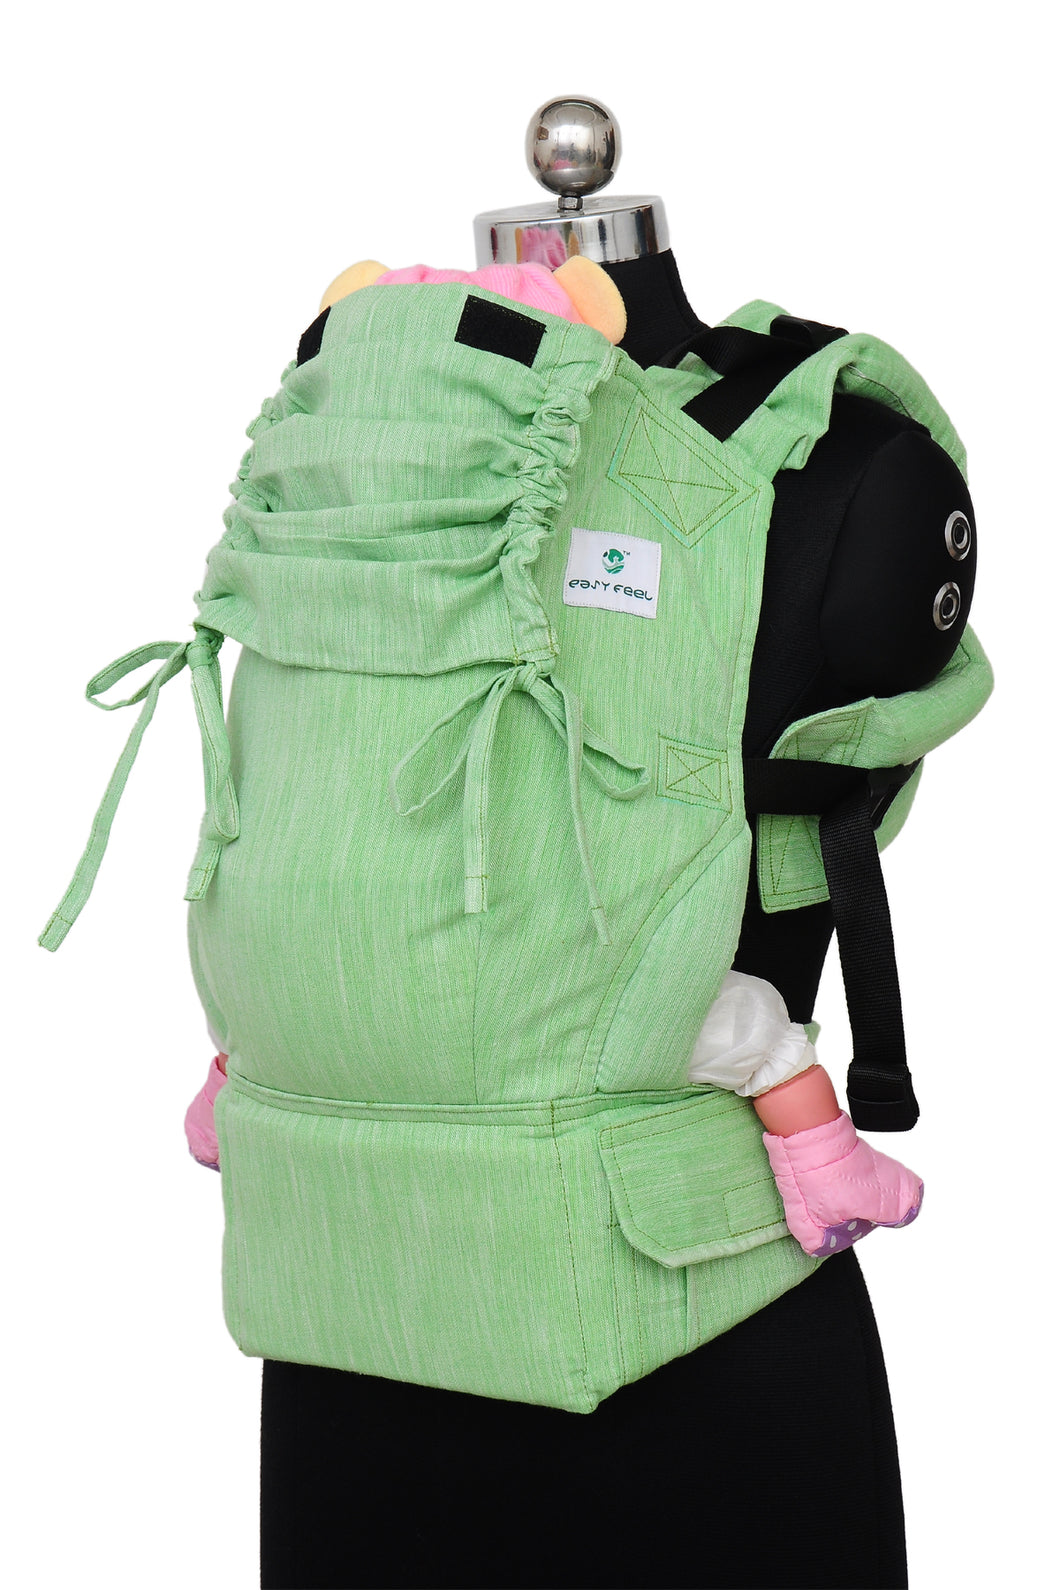 Toddler Soft Structured Carrier - Sage